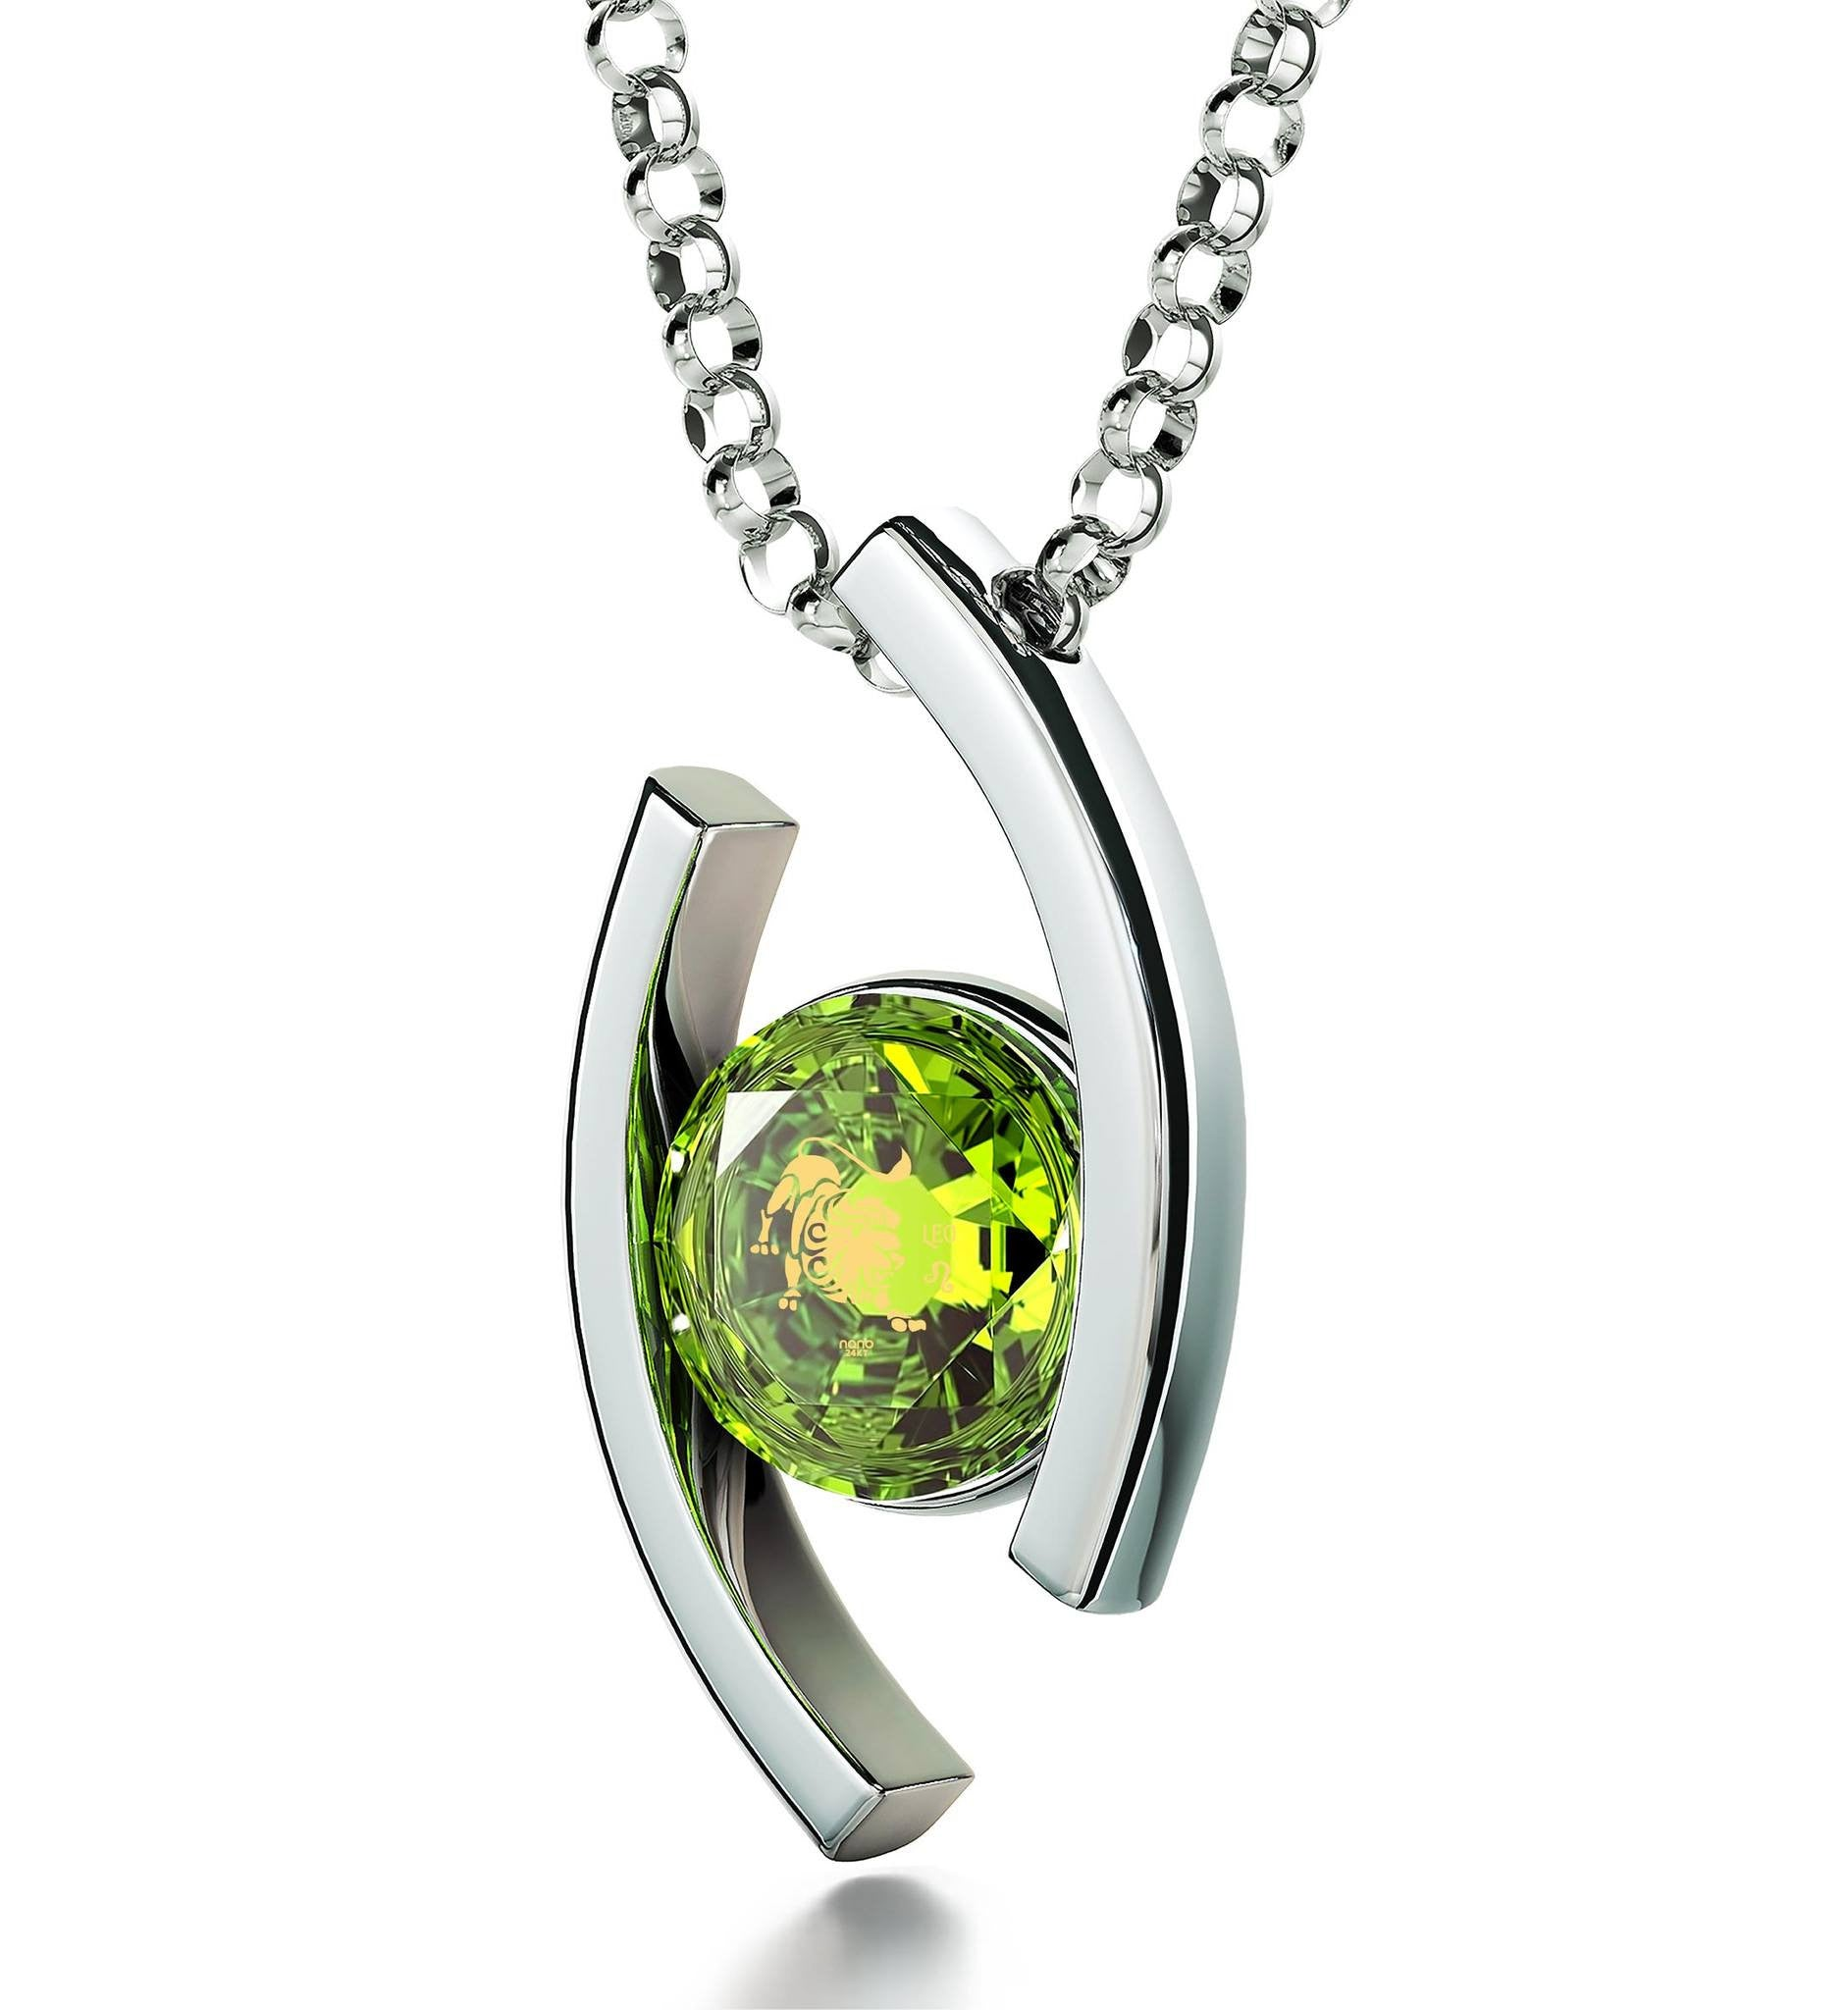 jewellery in birthstone mystic birthstonecluster meg jands peridot collection item necklace august rg mysticmeg